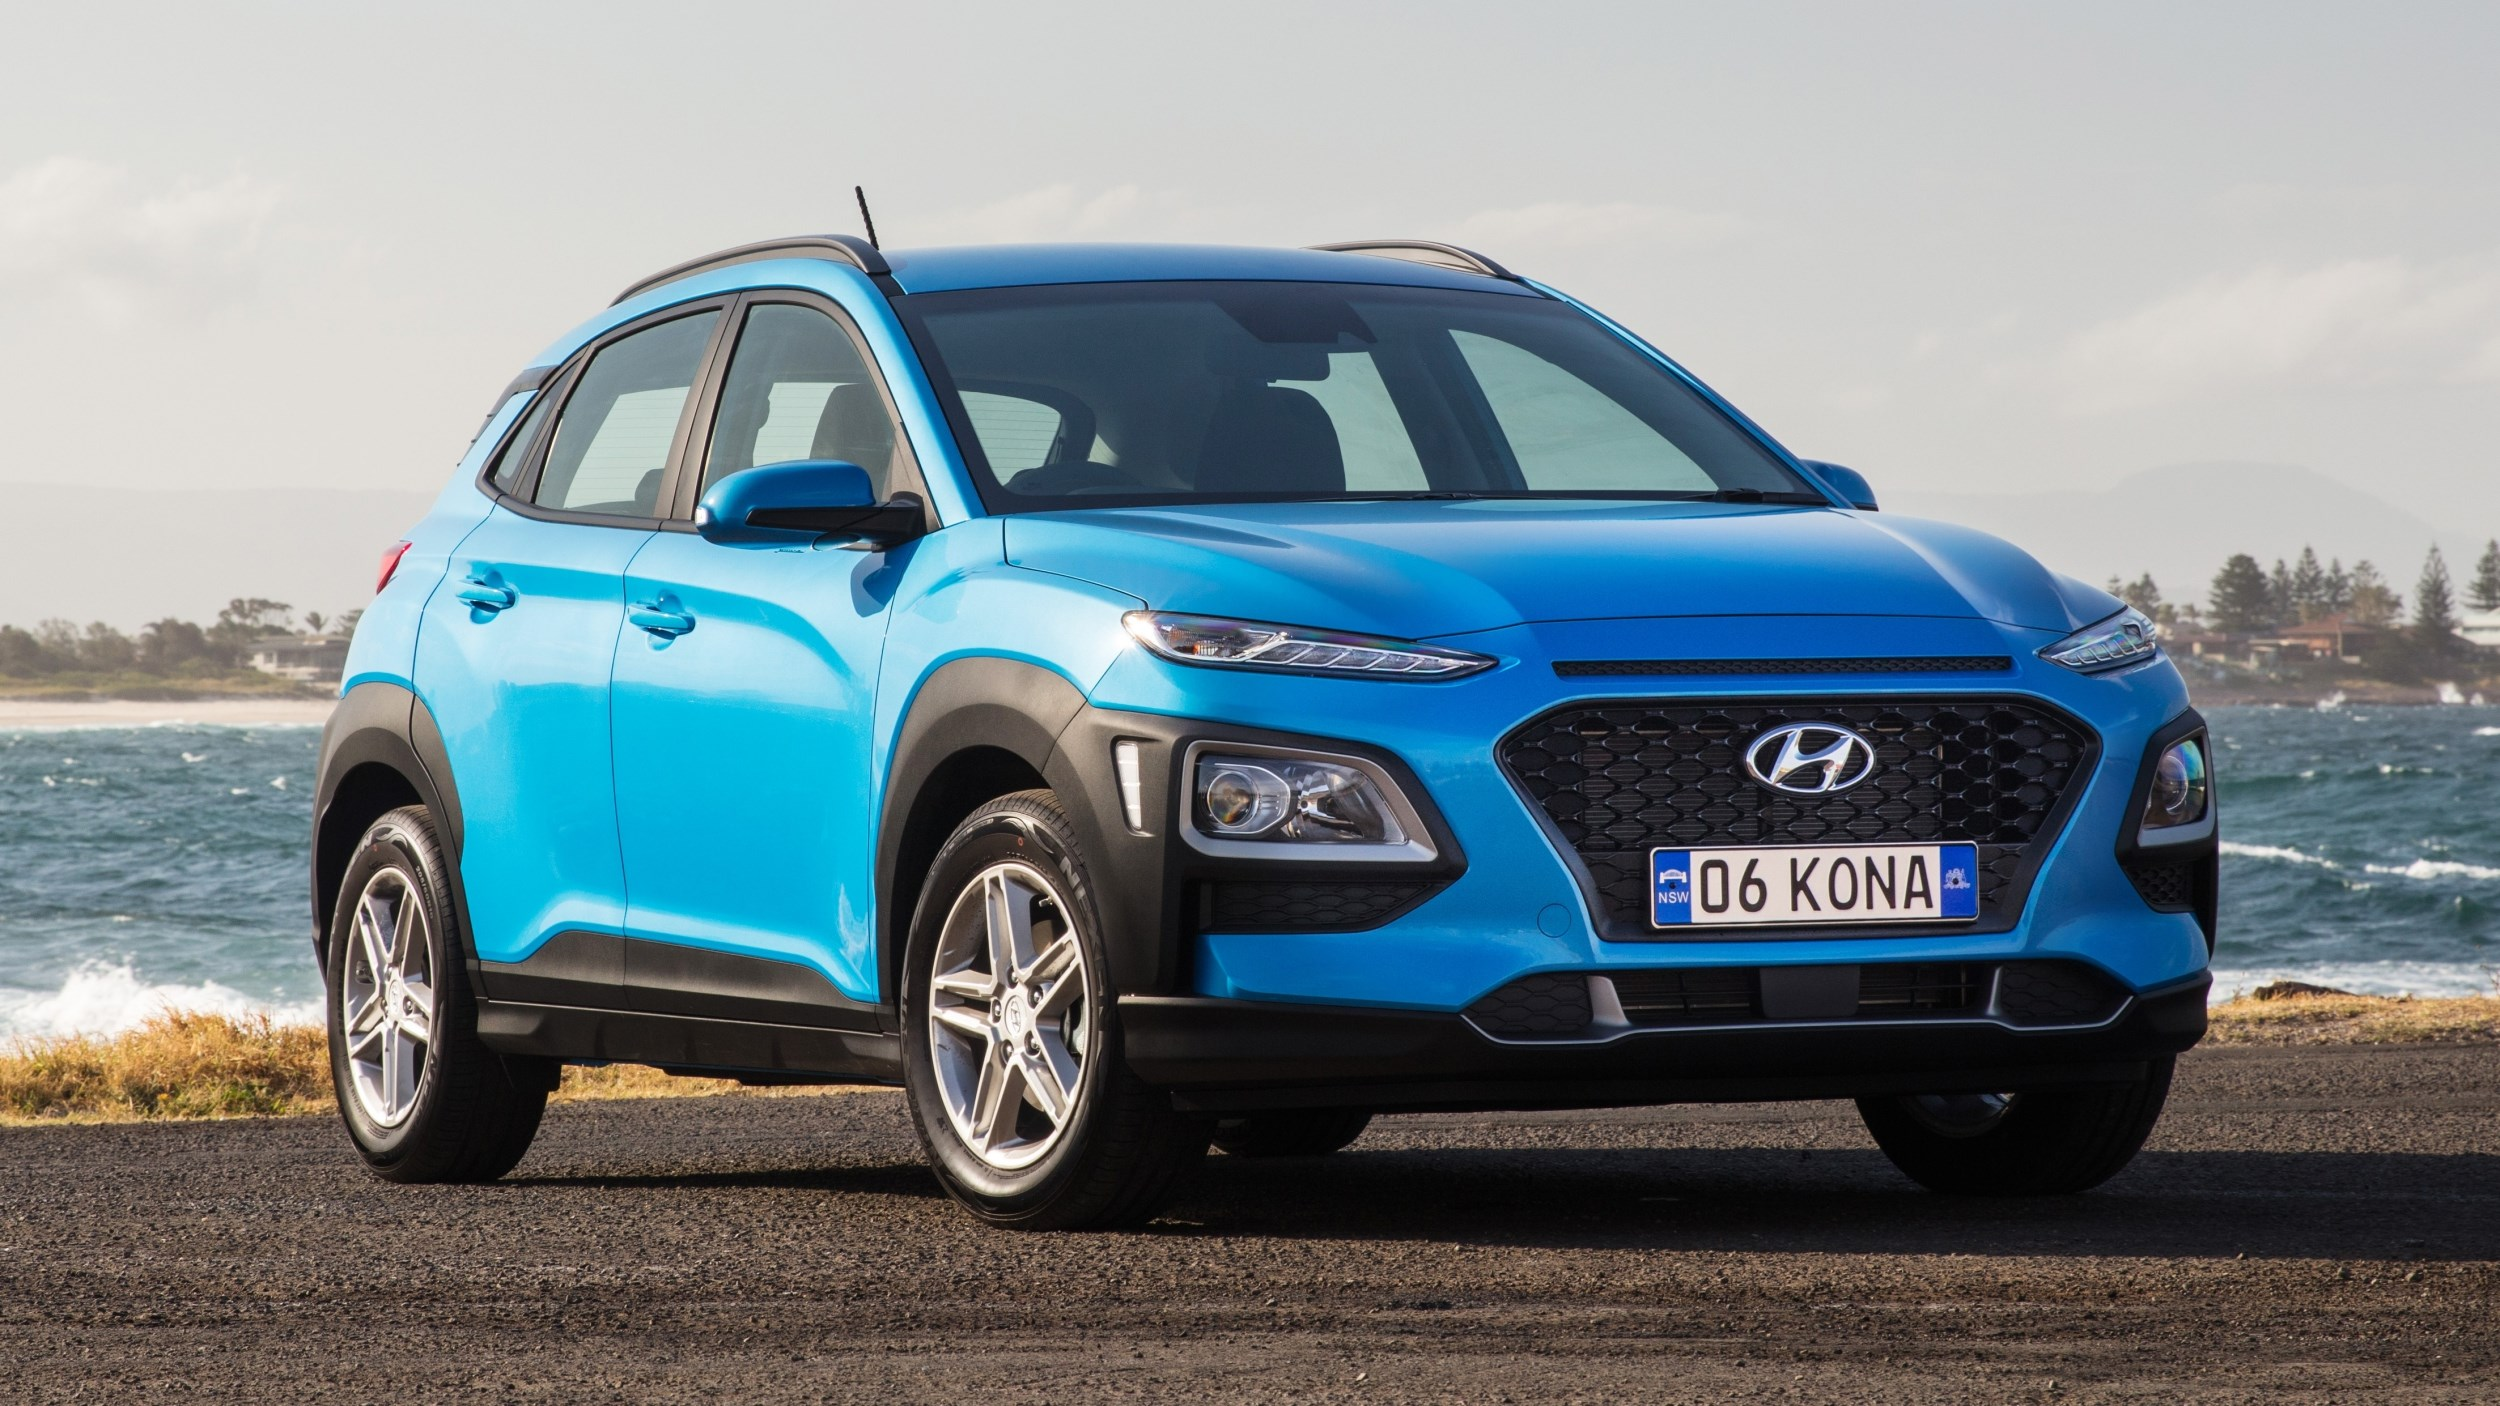 2018 Hyundai Kona Lands, From $24,500 Thumbnail